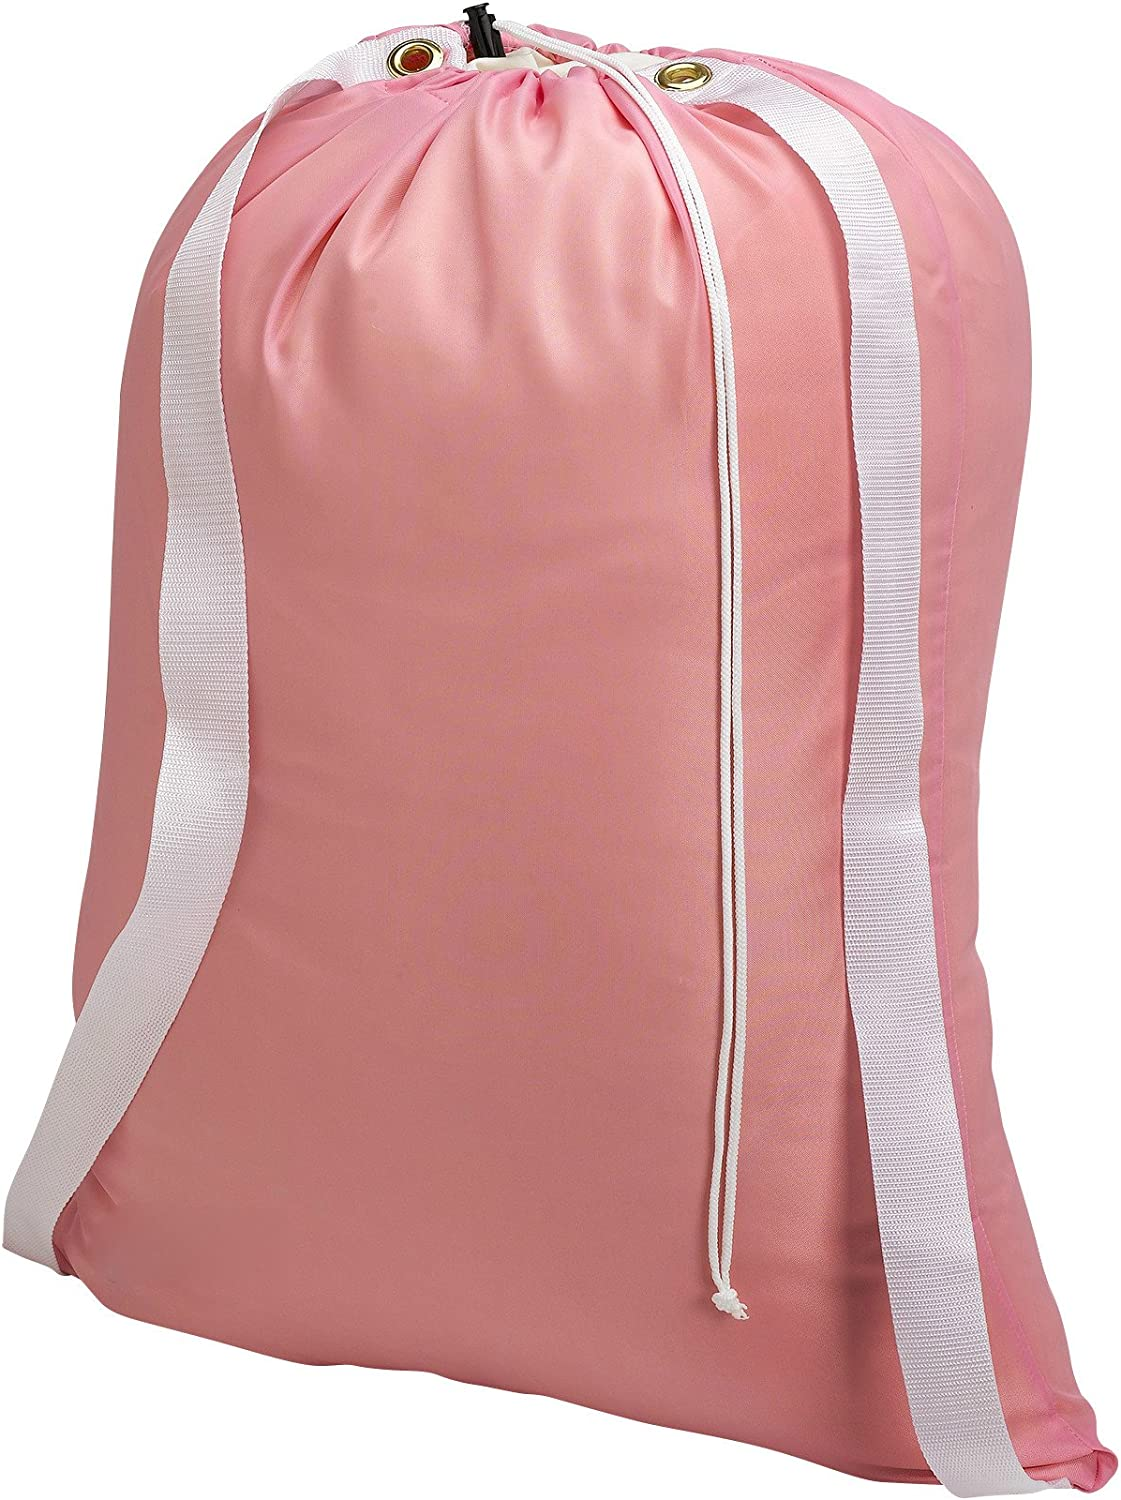 "Backpack Laundry Bag, Pink - 22"" X 28"" - Two Shoulder Straps for Easy Backpack Carrying and Drawstring Closure. These Nylon Laundry Bags Come in a Variety of Attractive Colors and Patterns."